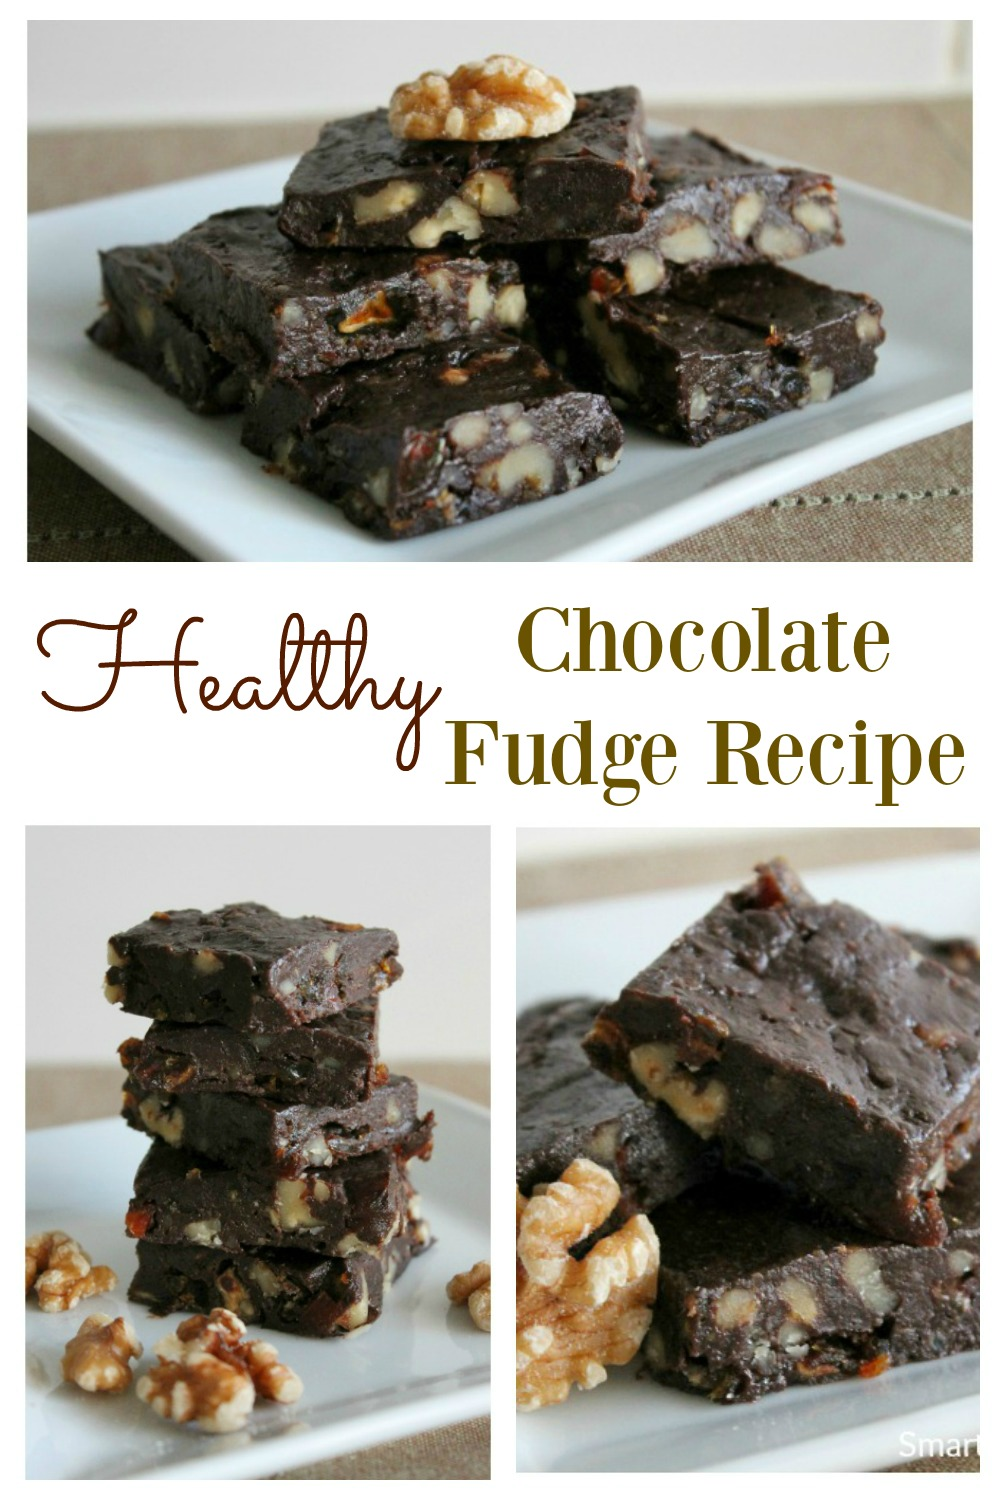 A simple healthy chocolate fudge recipe.Despite being healthy, it's rich and decadent. It's easy to make, and tastes amazing. This is the best ever chocolate fudge that you can eat guilt free.The whole family will love it, that's if you want to share with the kids! Grab this recipe now or regret it.